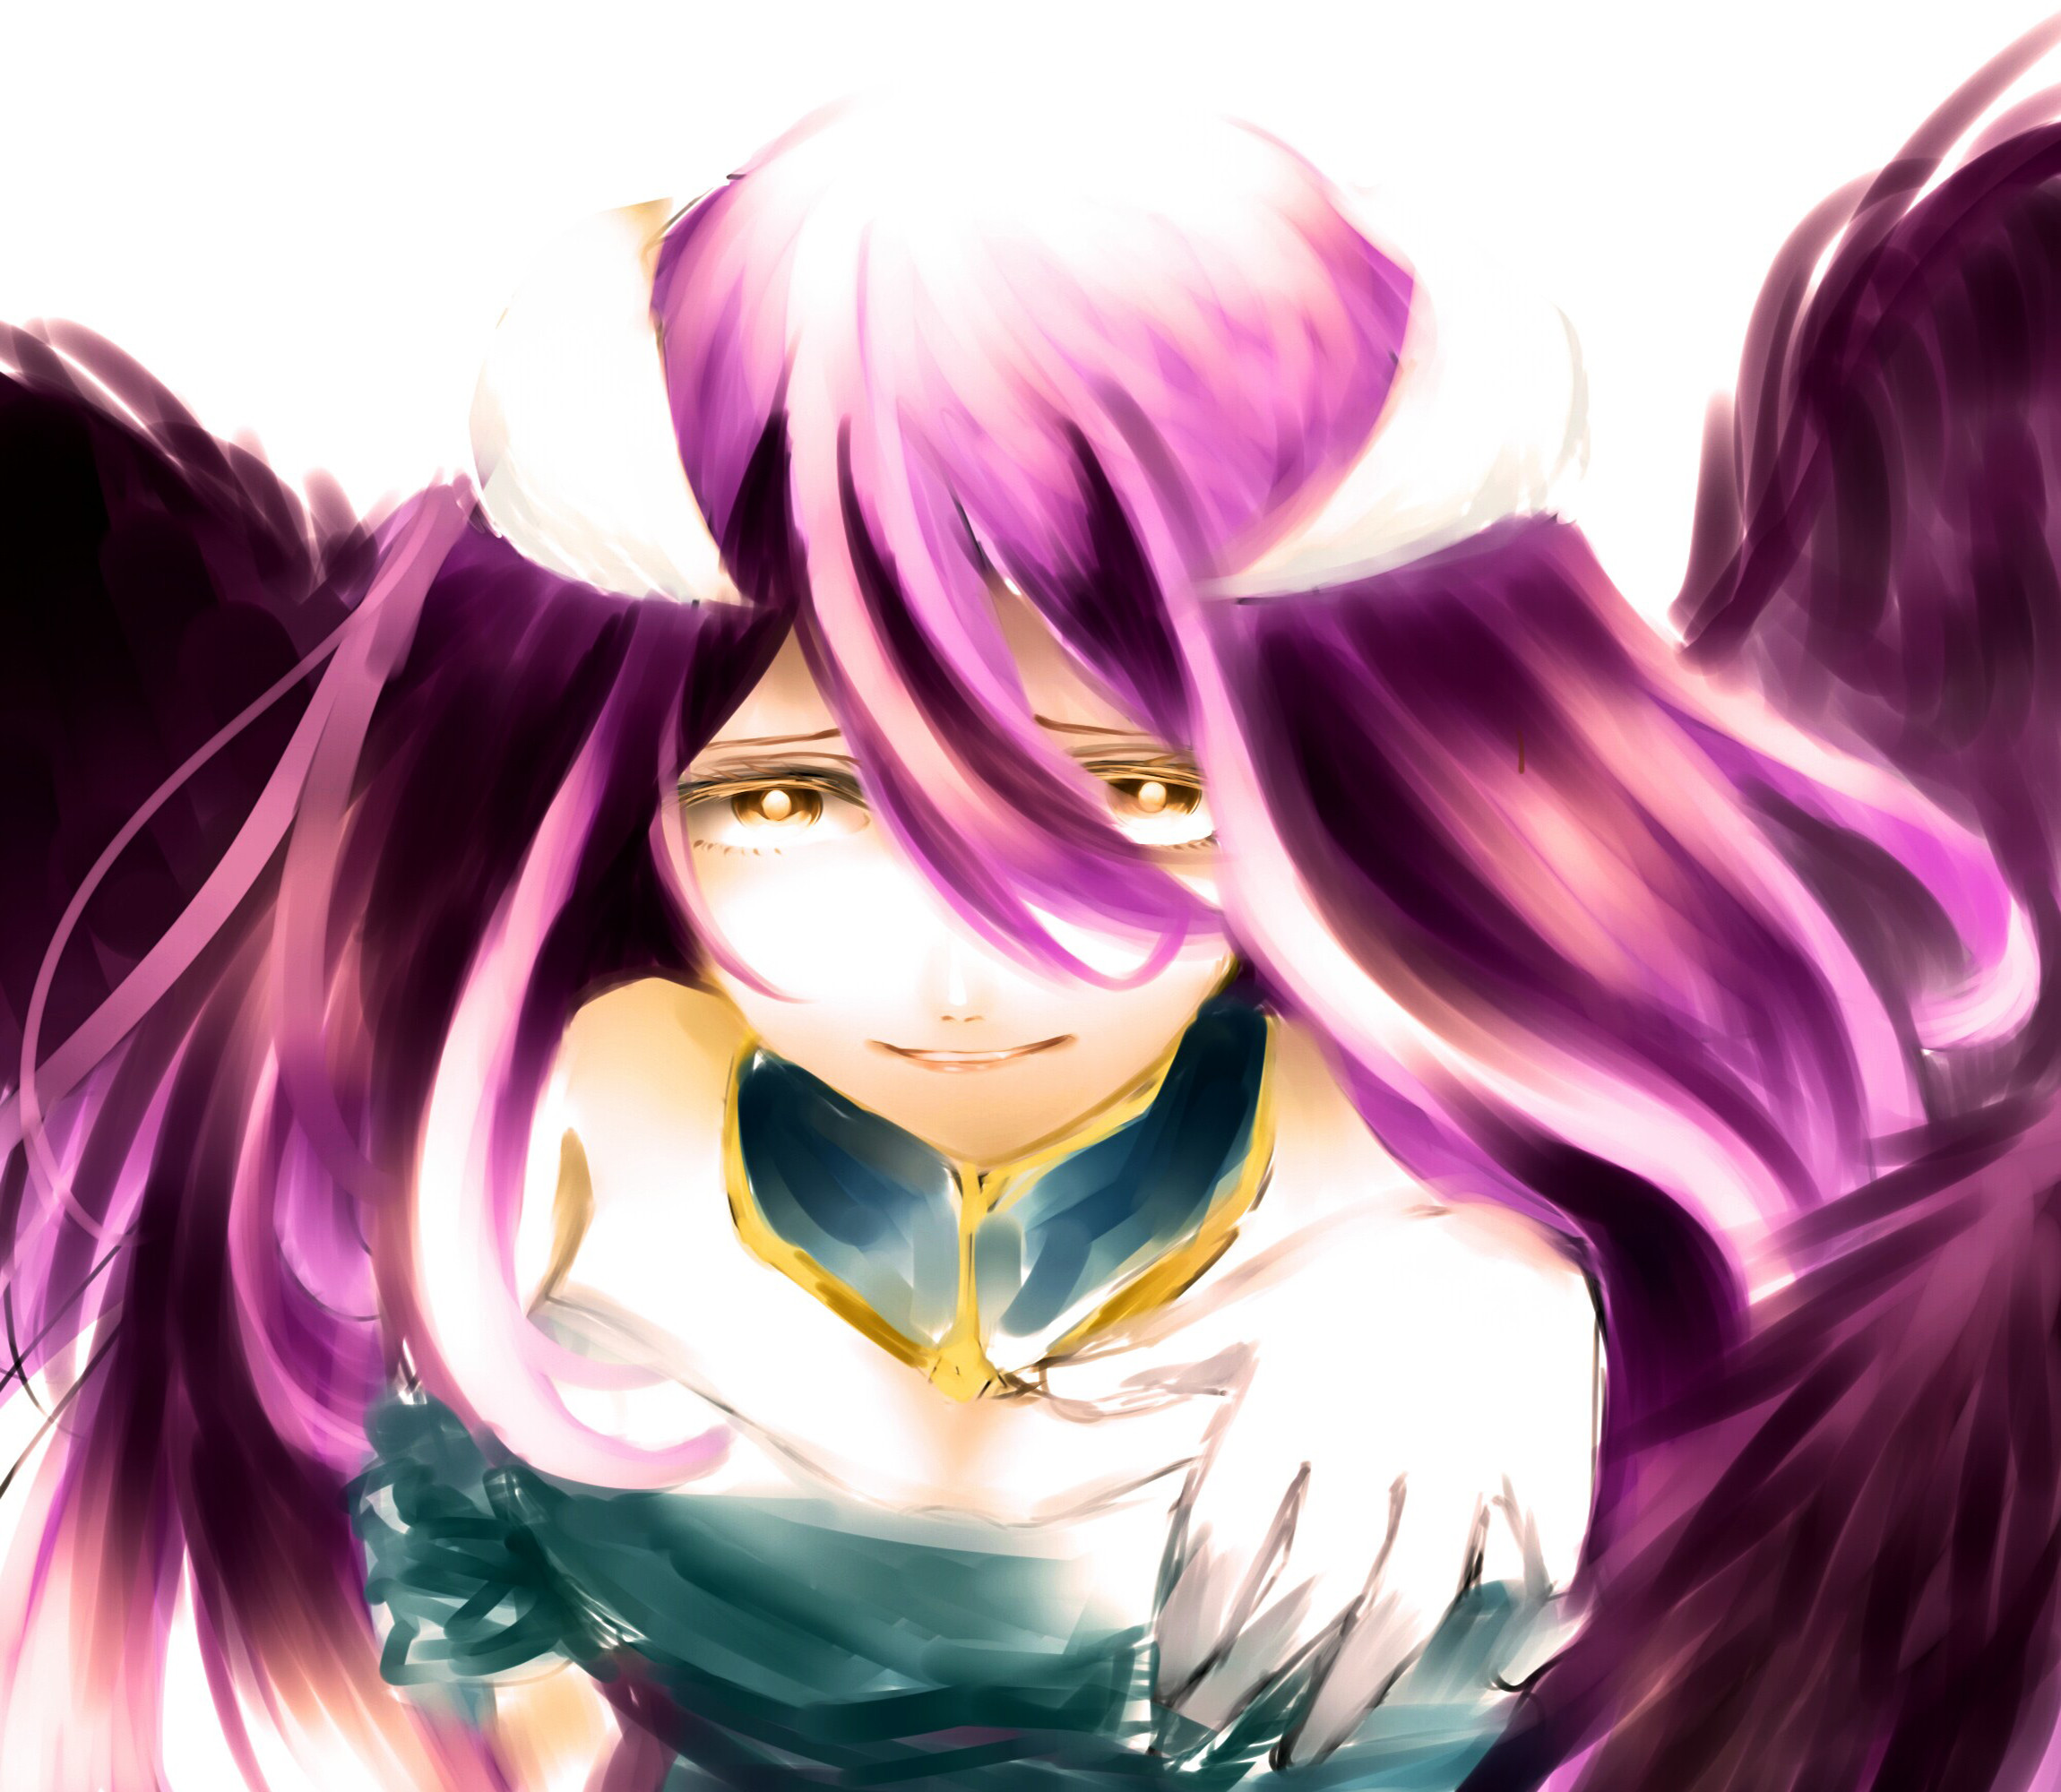 2300x2000 Anime Overlord Overlord Albedo Wallpaper